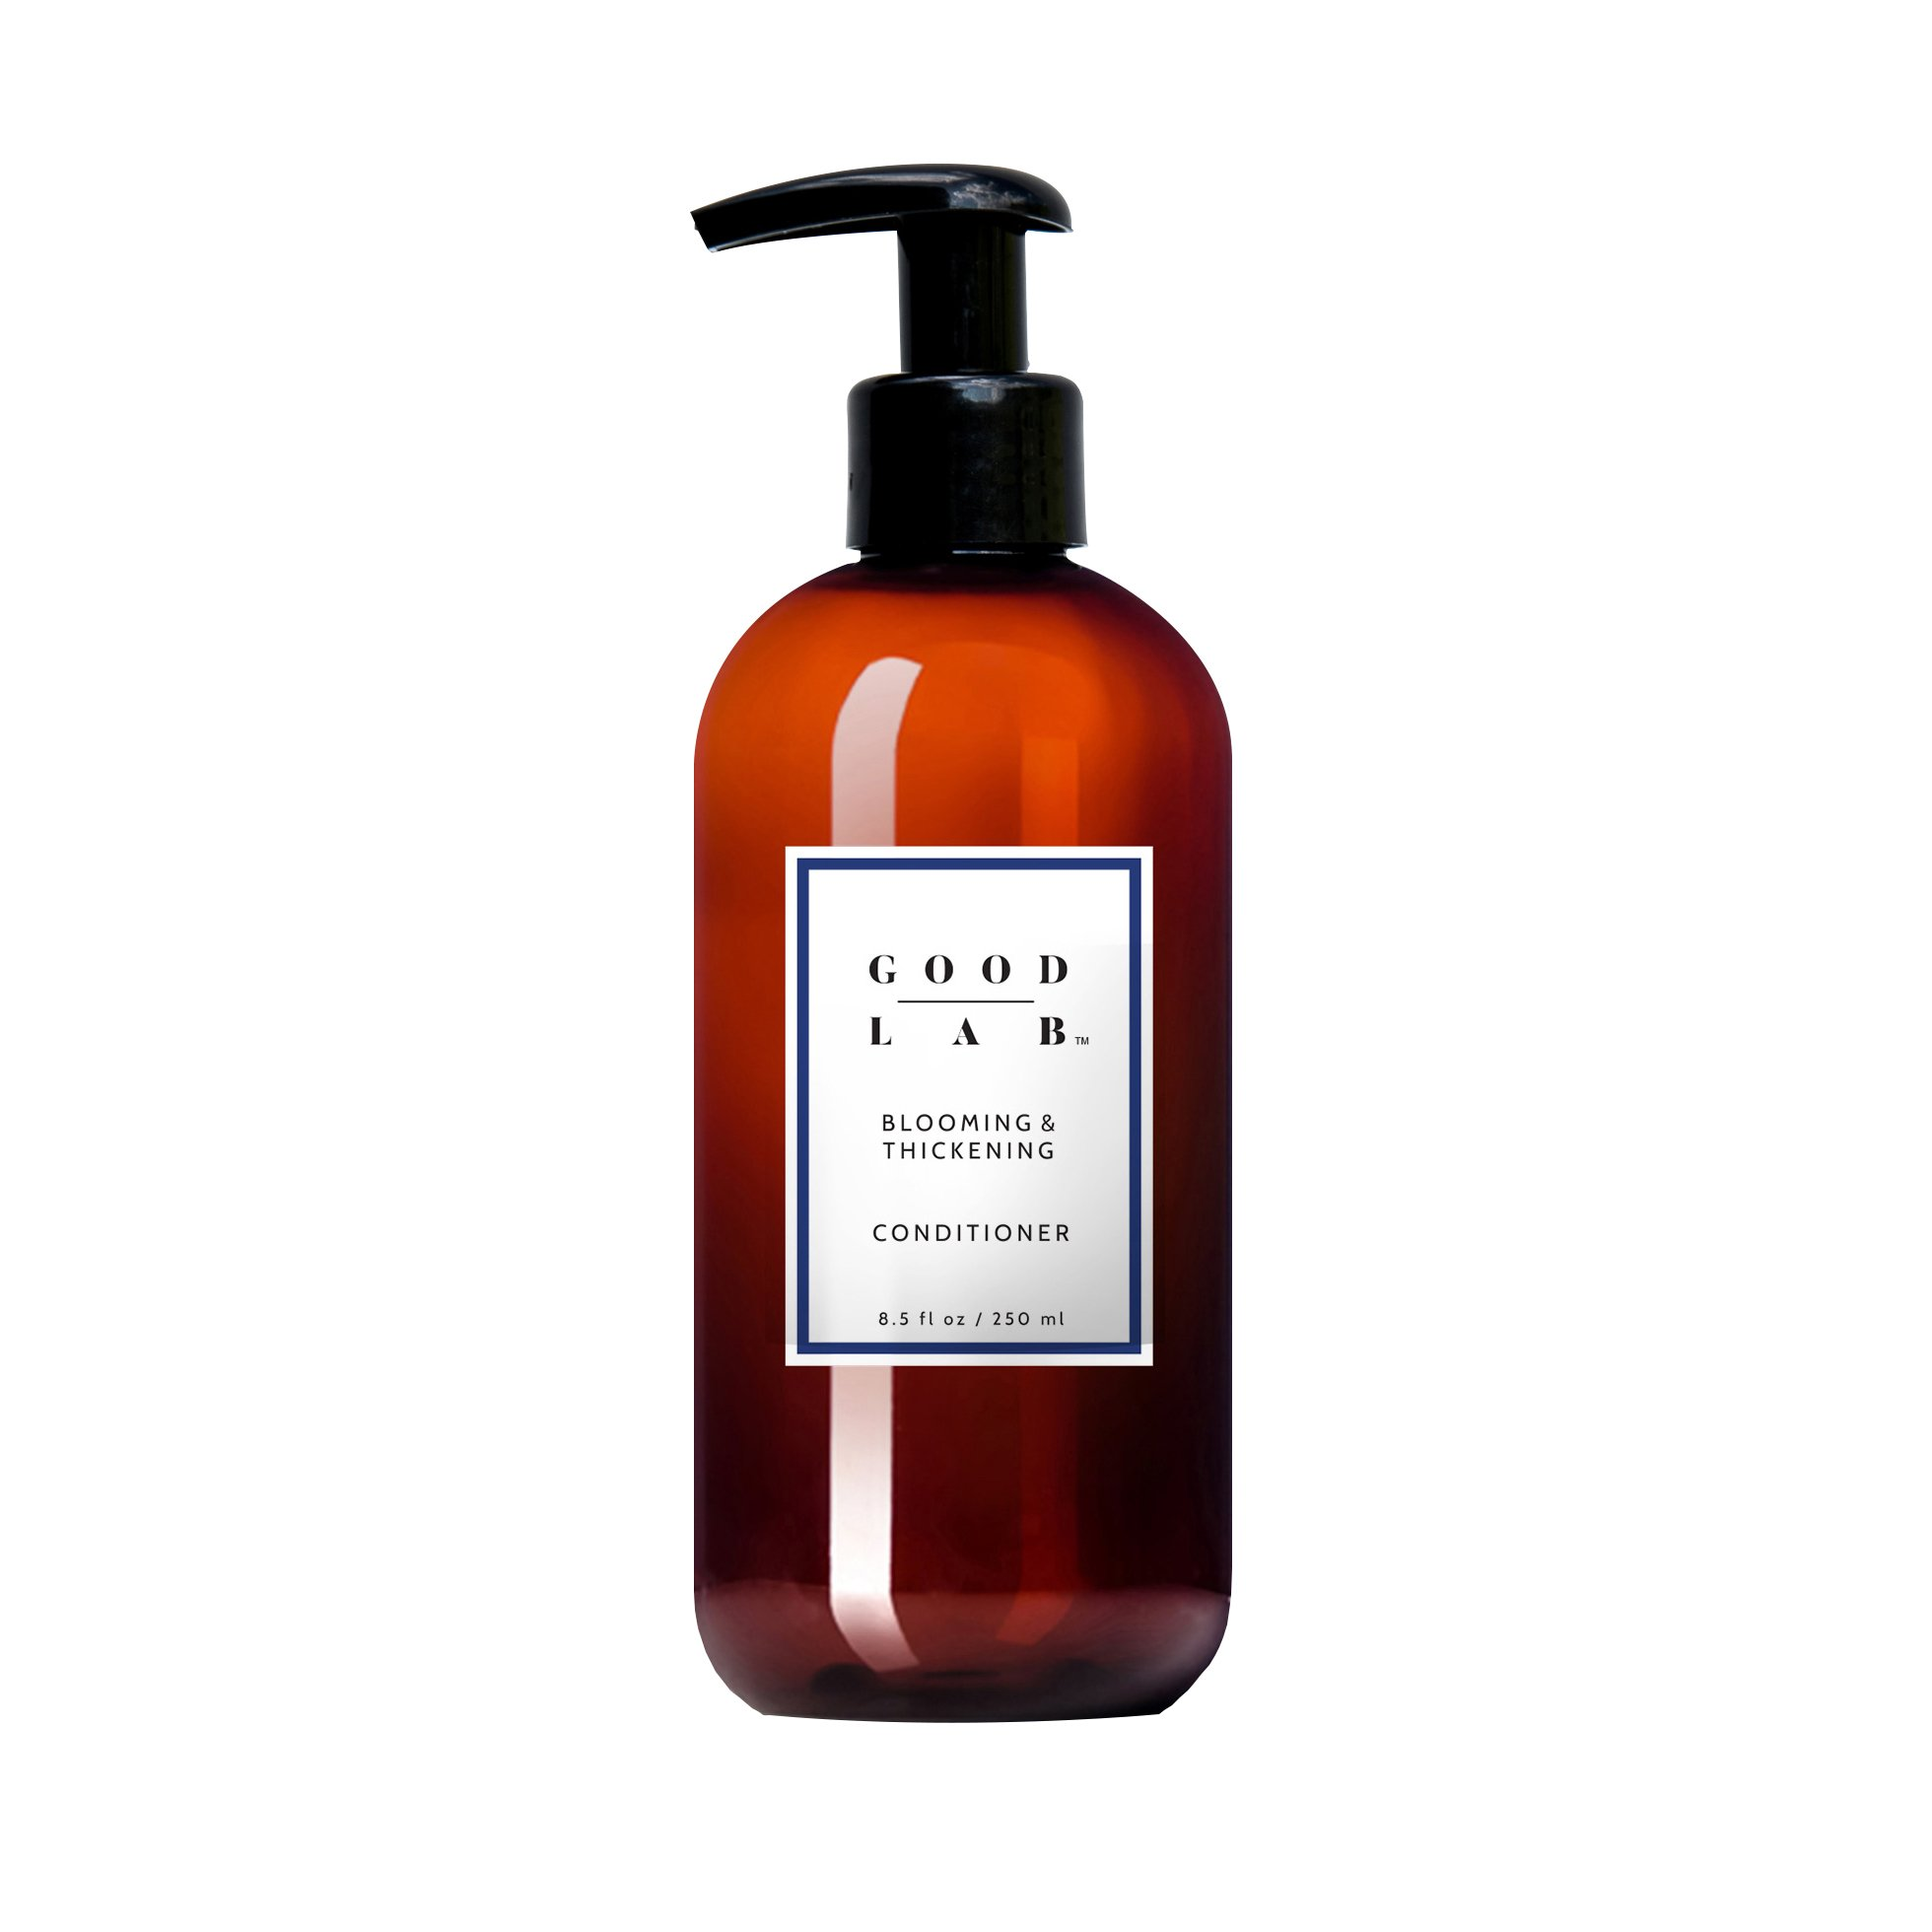 Good Lab Blooming & Thickening Conditioner for Hair Loss, Hair Growth & Thinning Hair. Packed w/DHT Blockers & Antioxidants. Sulfate-free Conditioner. All Hair Types.